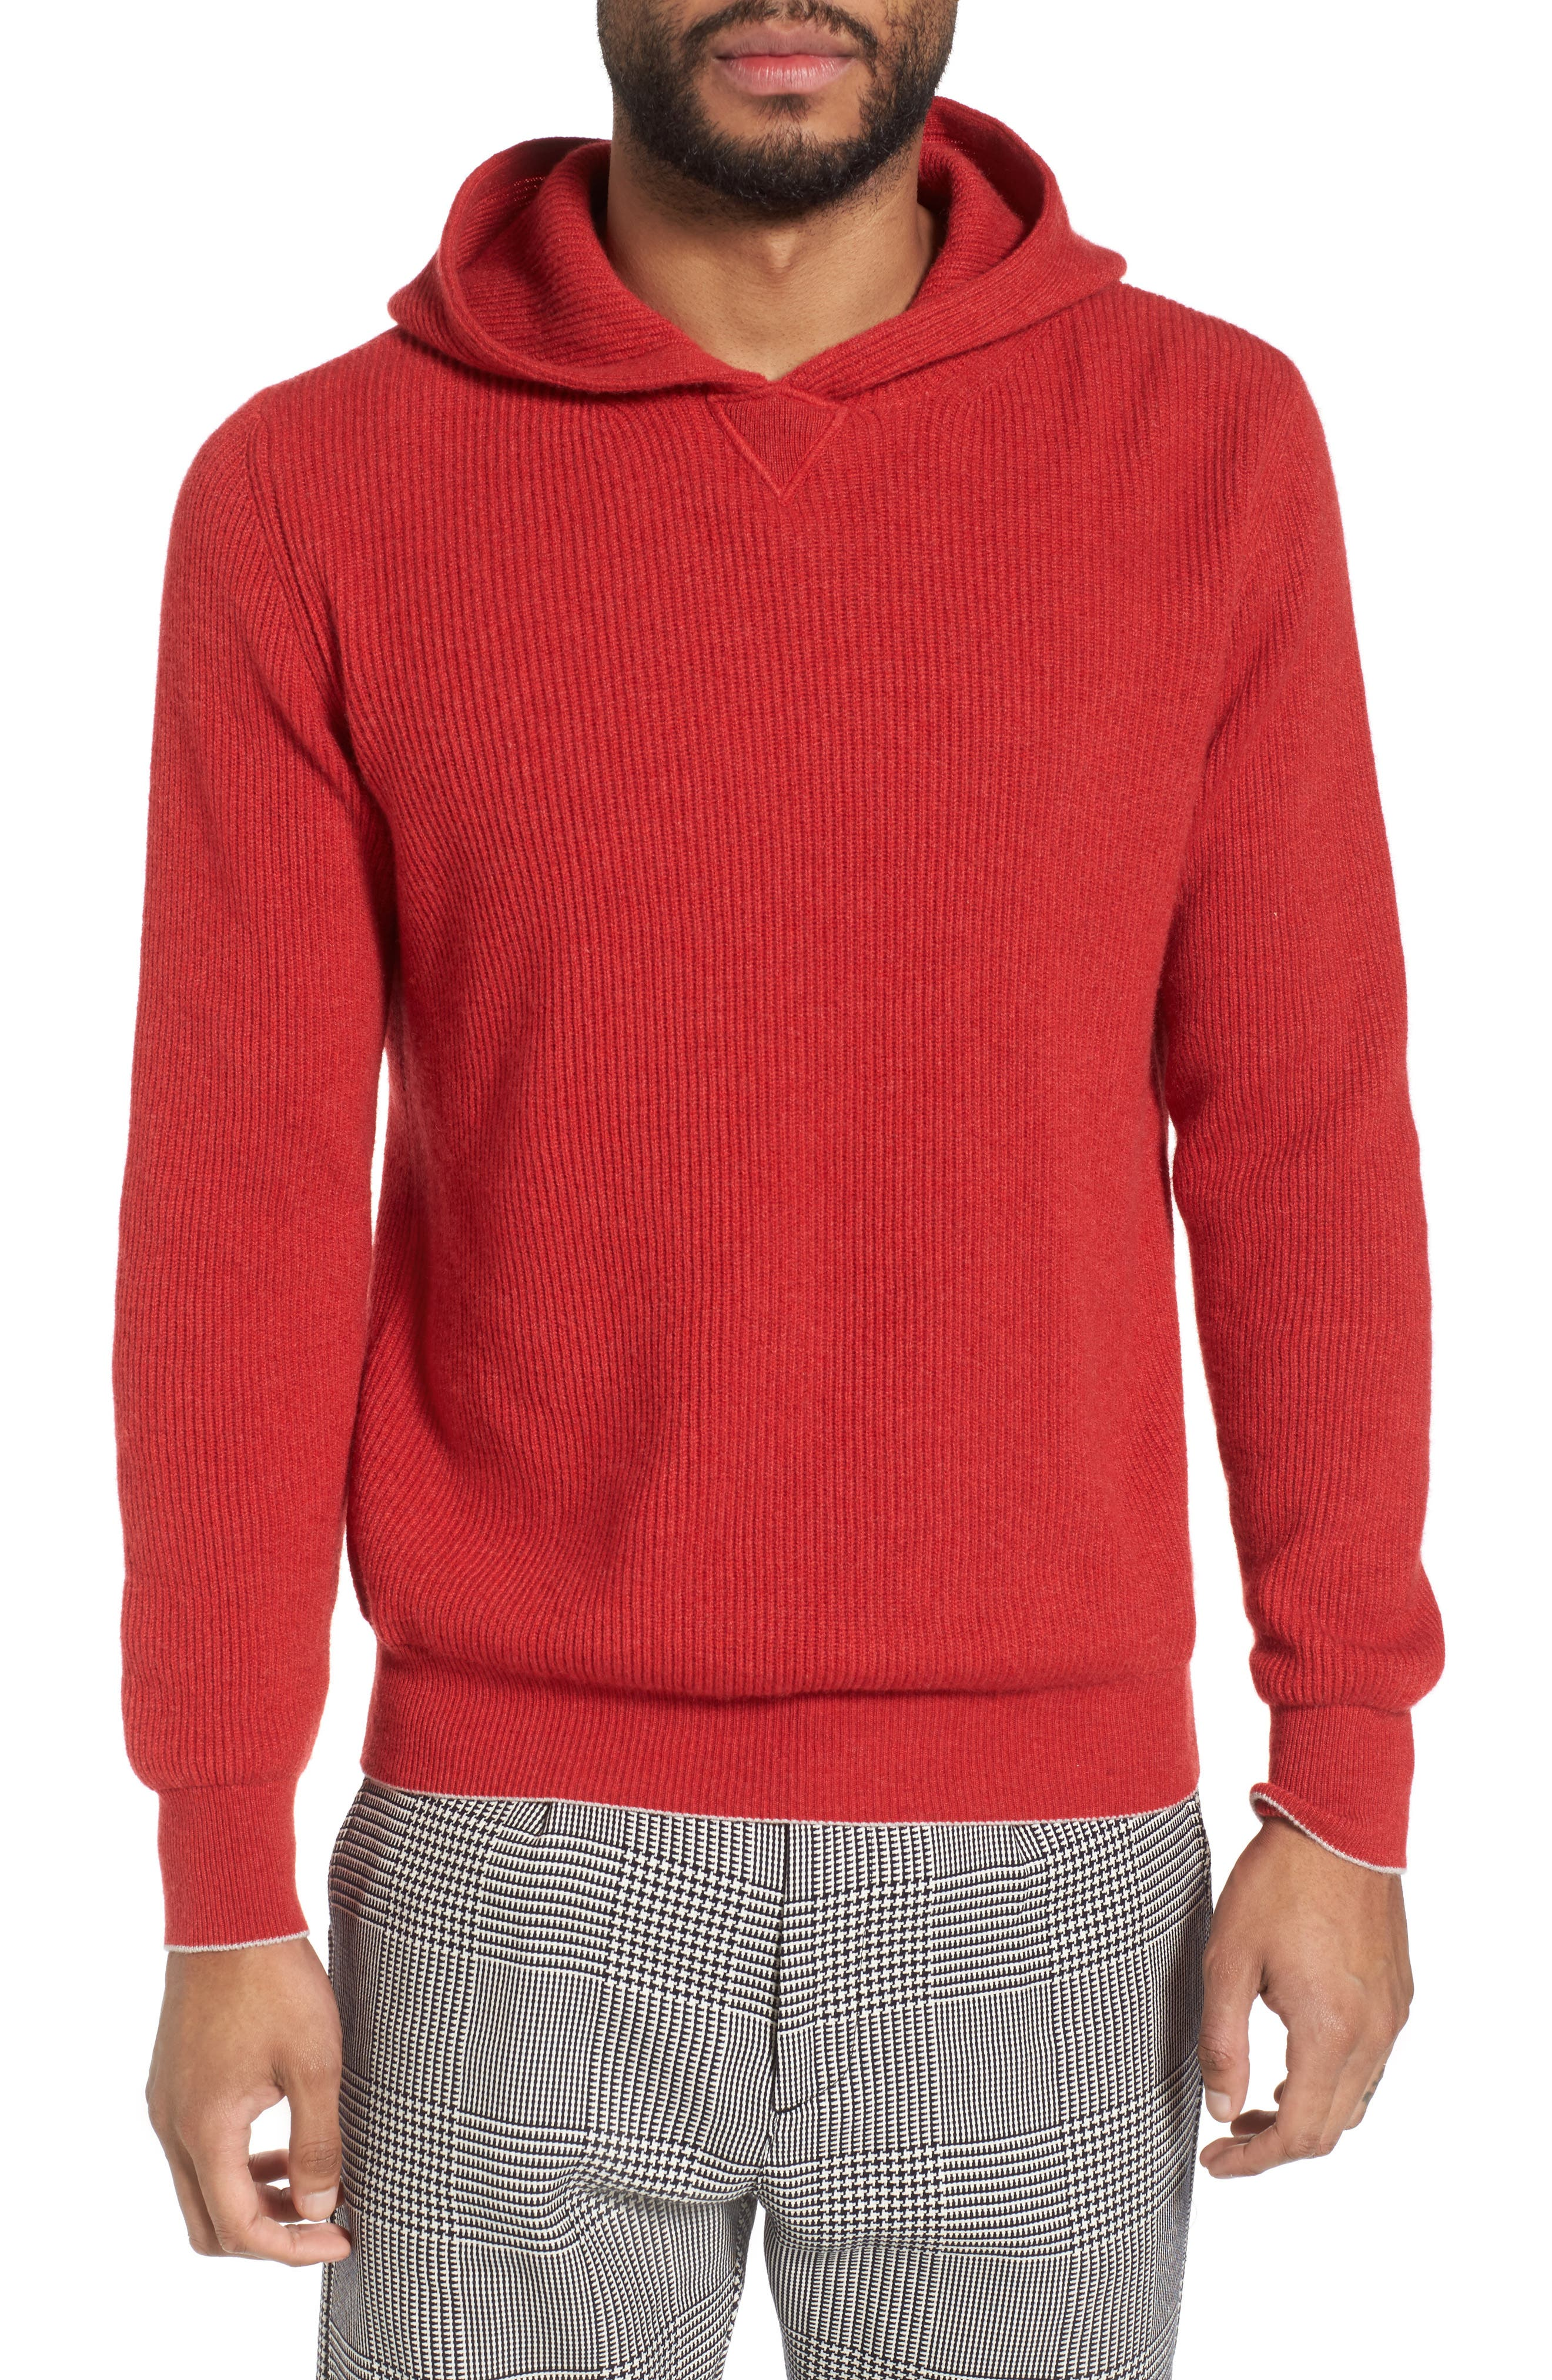 Cashmere Hoodie,                             Main thumbnail 1, color,                             Red